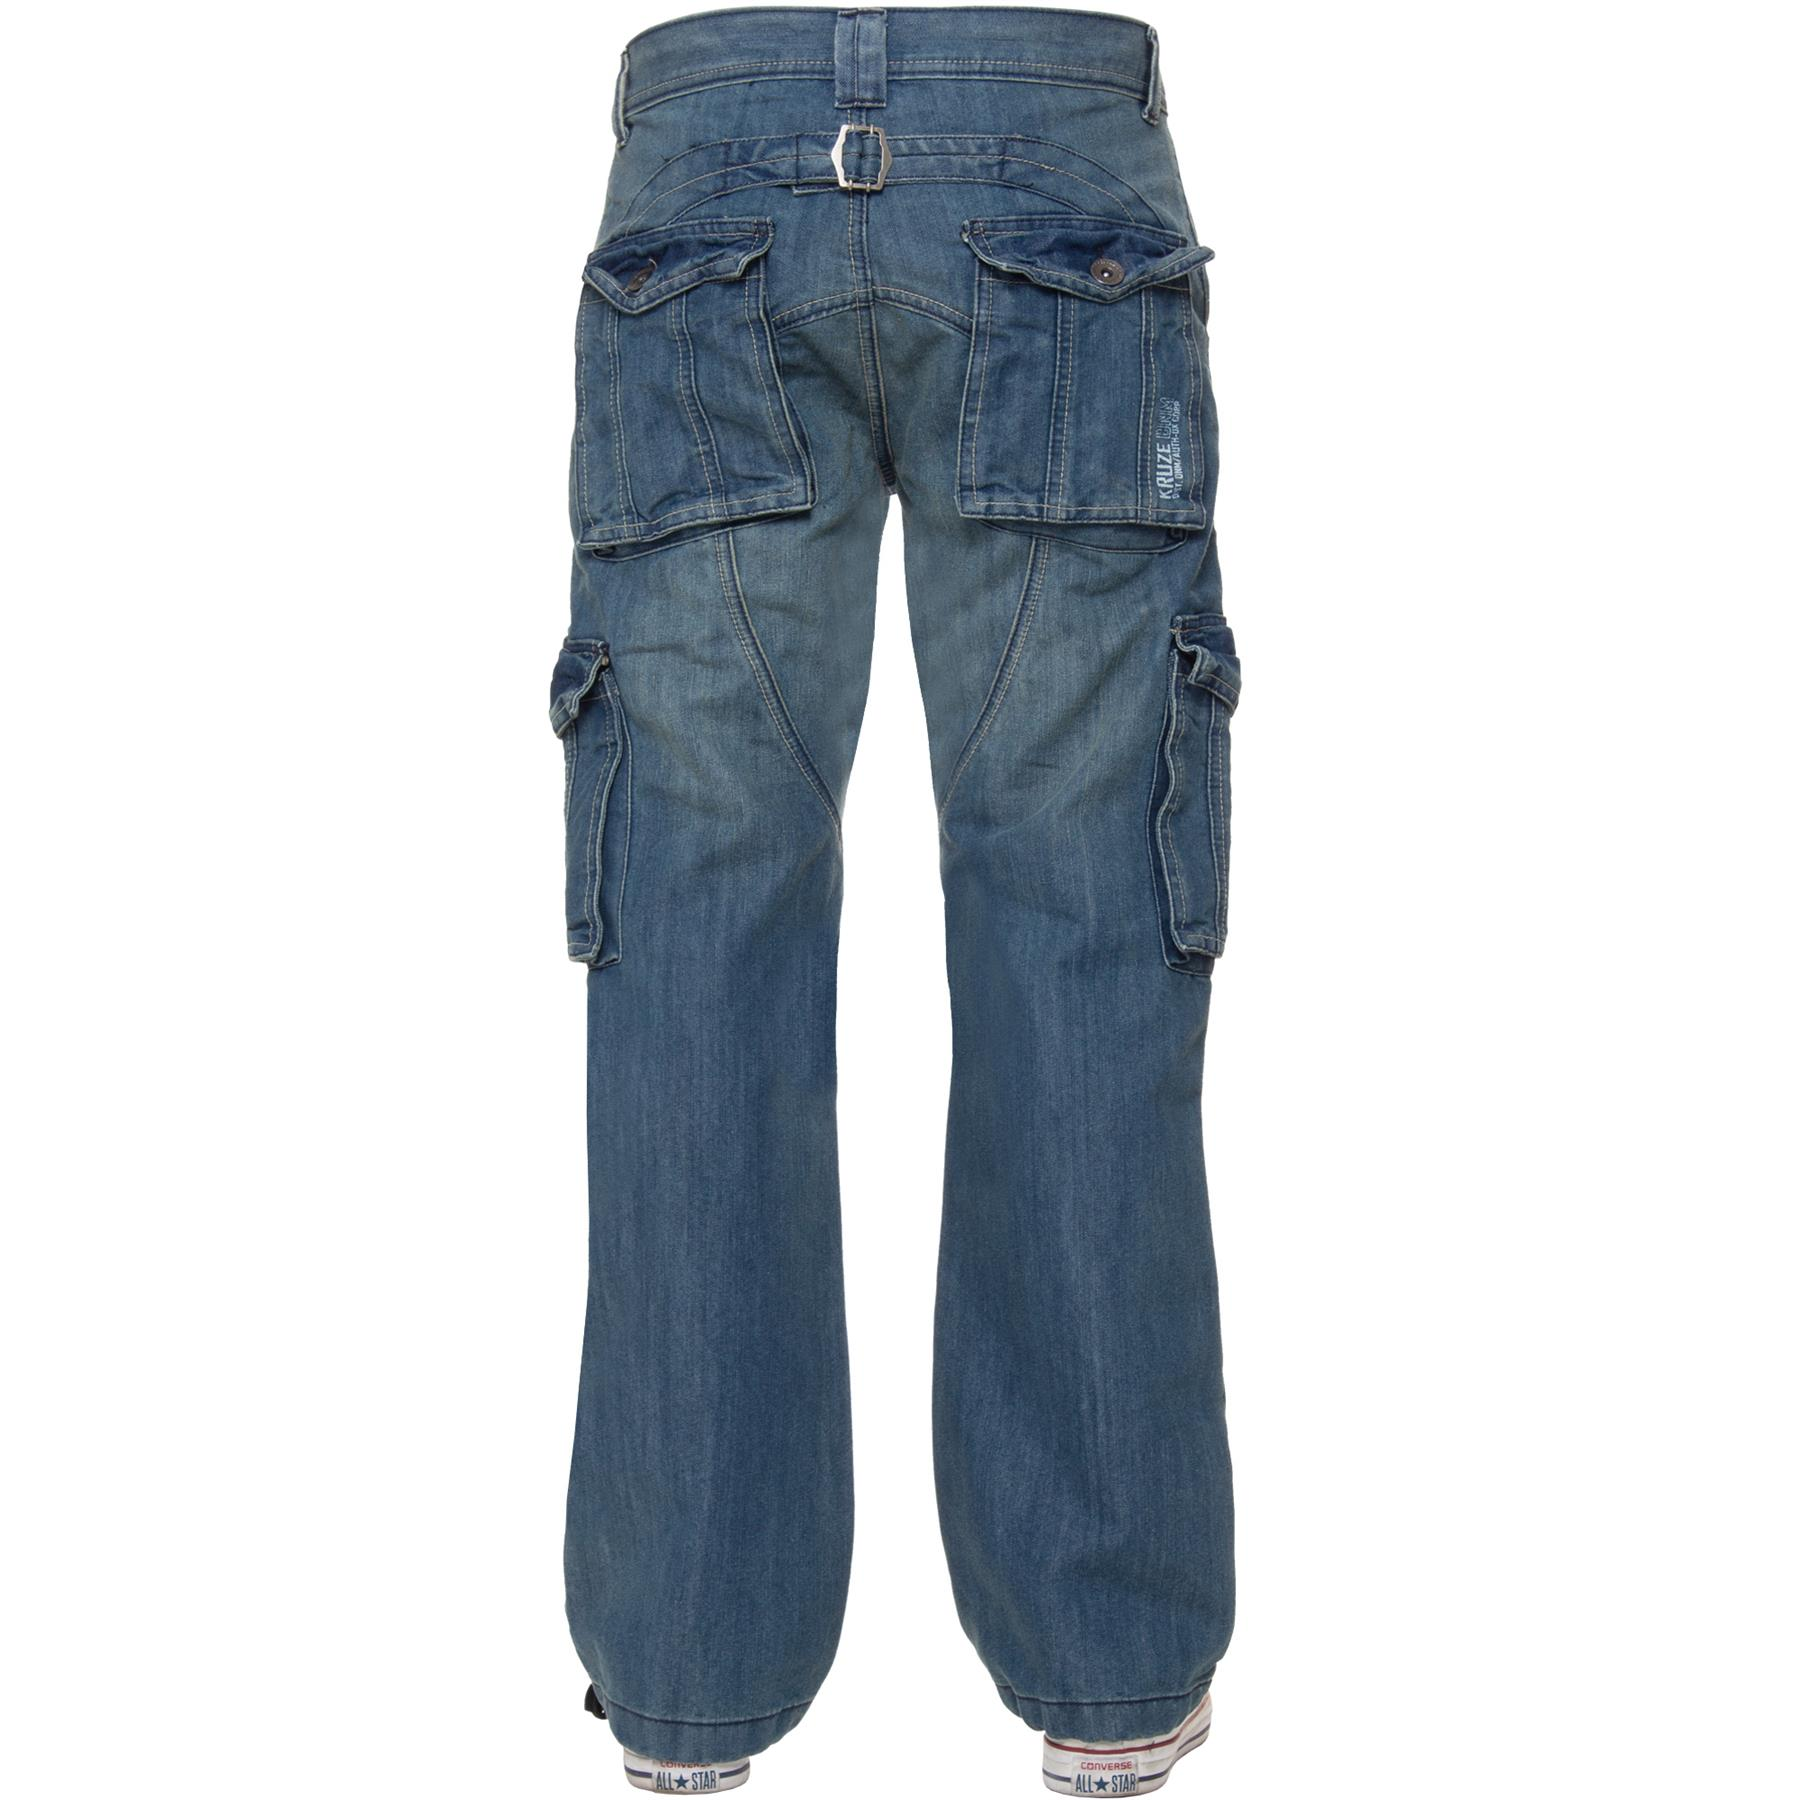 Kruze-Mens-Combat-Jeans-Casual-Cargo-Work-Denim-Trousers-Big-Tall-All-Waists thumbnail 6